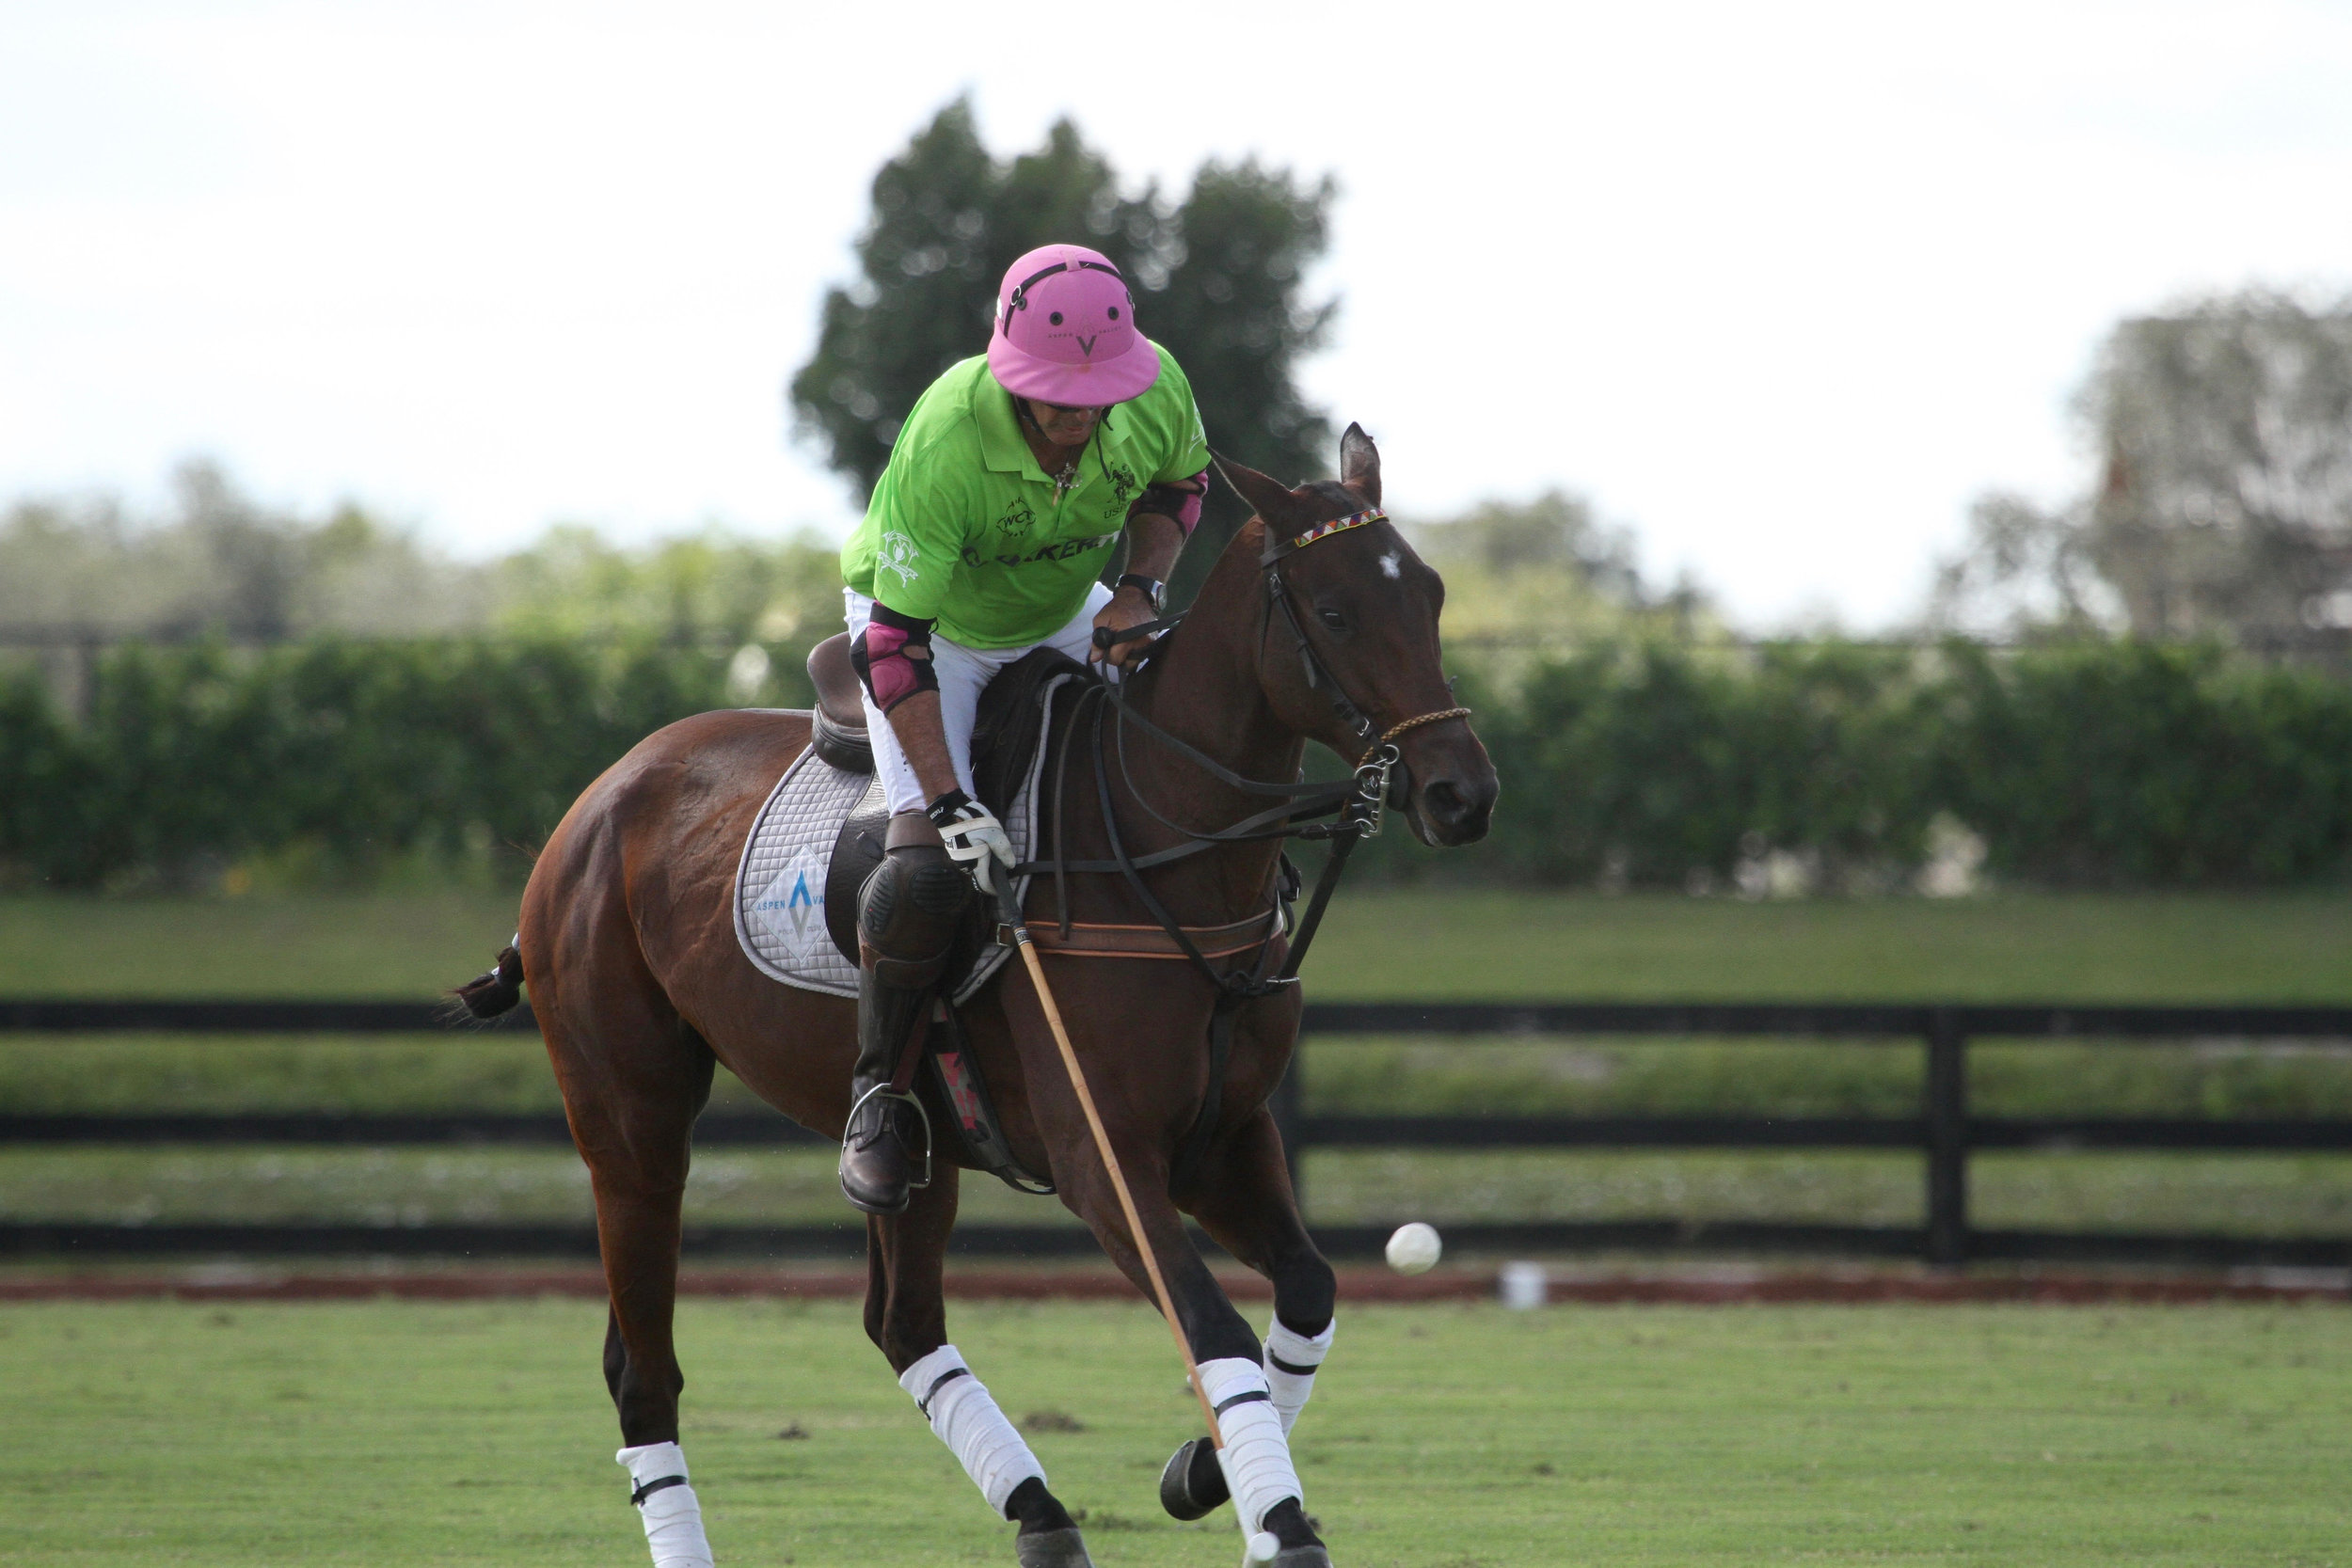 Juan Bollini of ChukkerTV works the ball in the air. .jpg